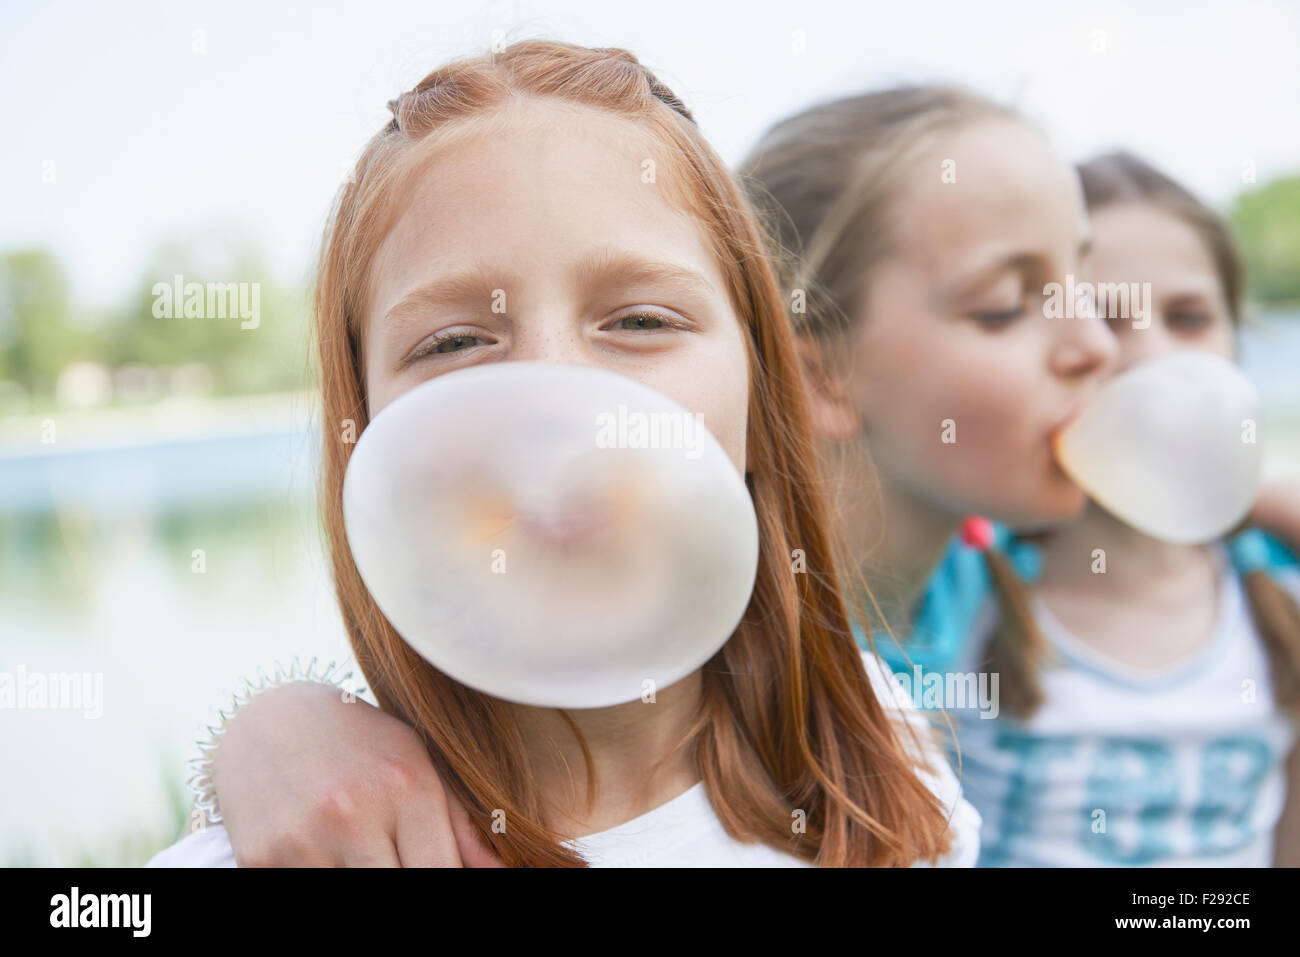 Girls blowing chewing gum bubbles, Bavaria, Germany - Stock Image